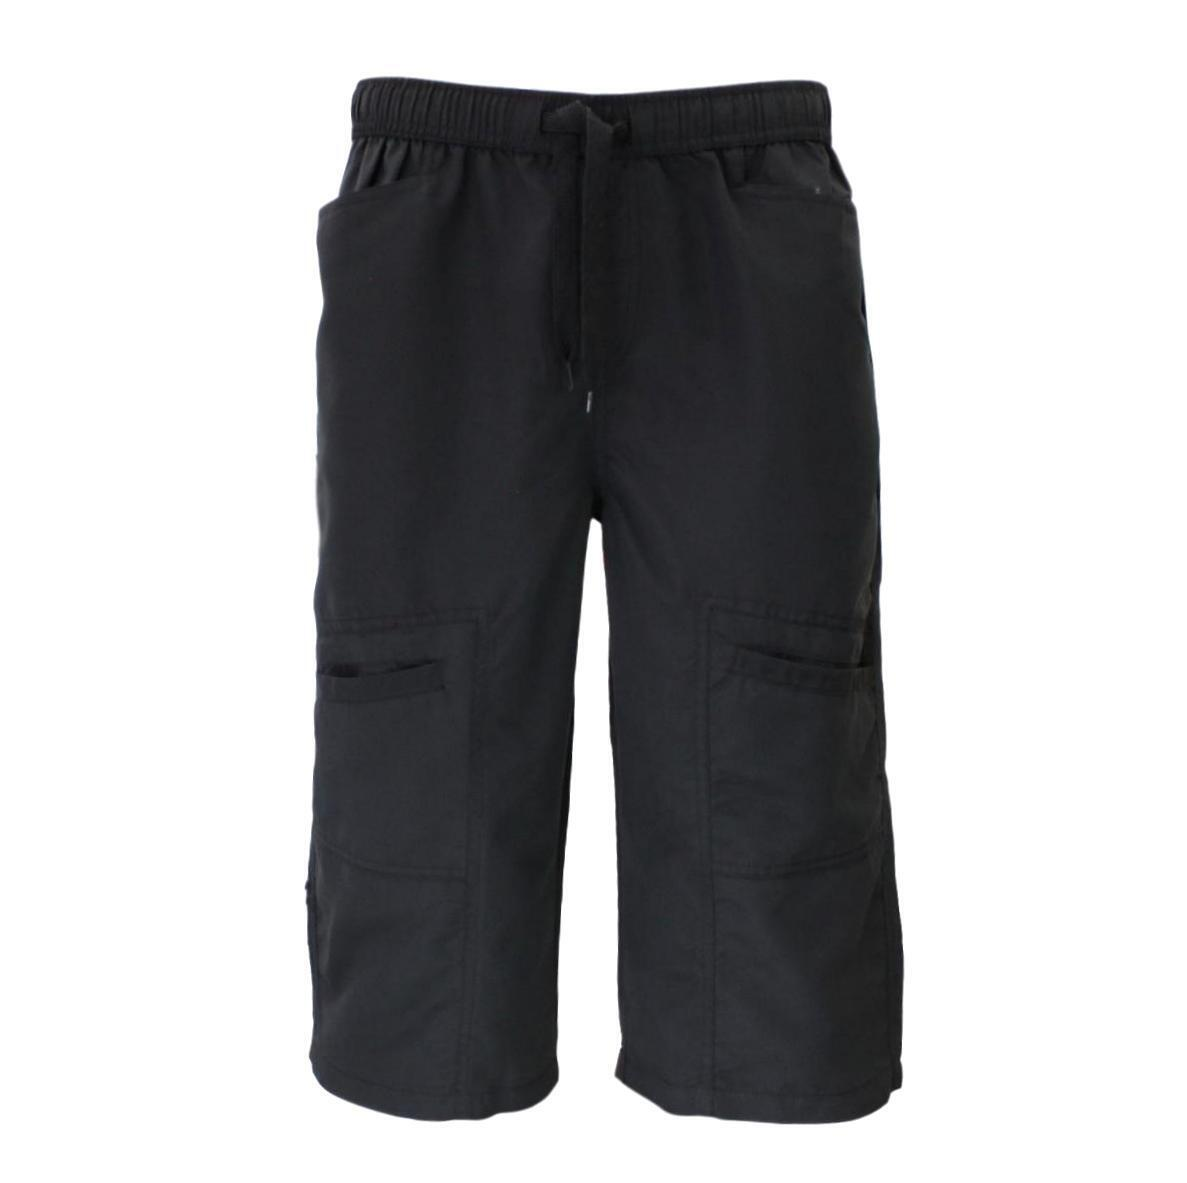 Mens-3-4-Cargo-Long-Shorts-Multi-Pocket-Elastic-Waist-Drawstring thumbnail 3